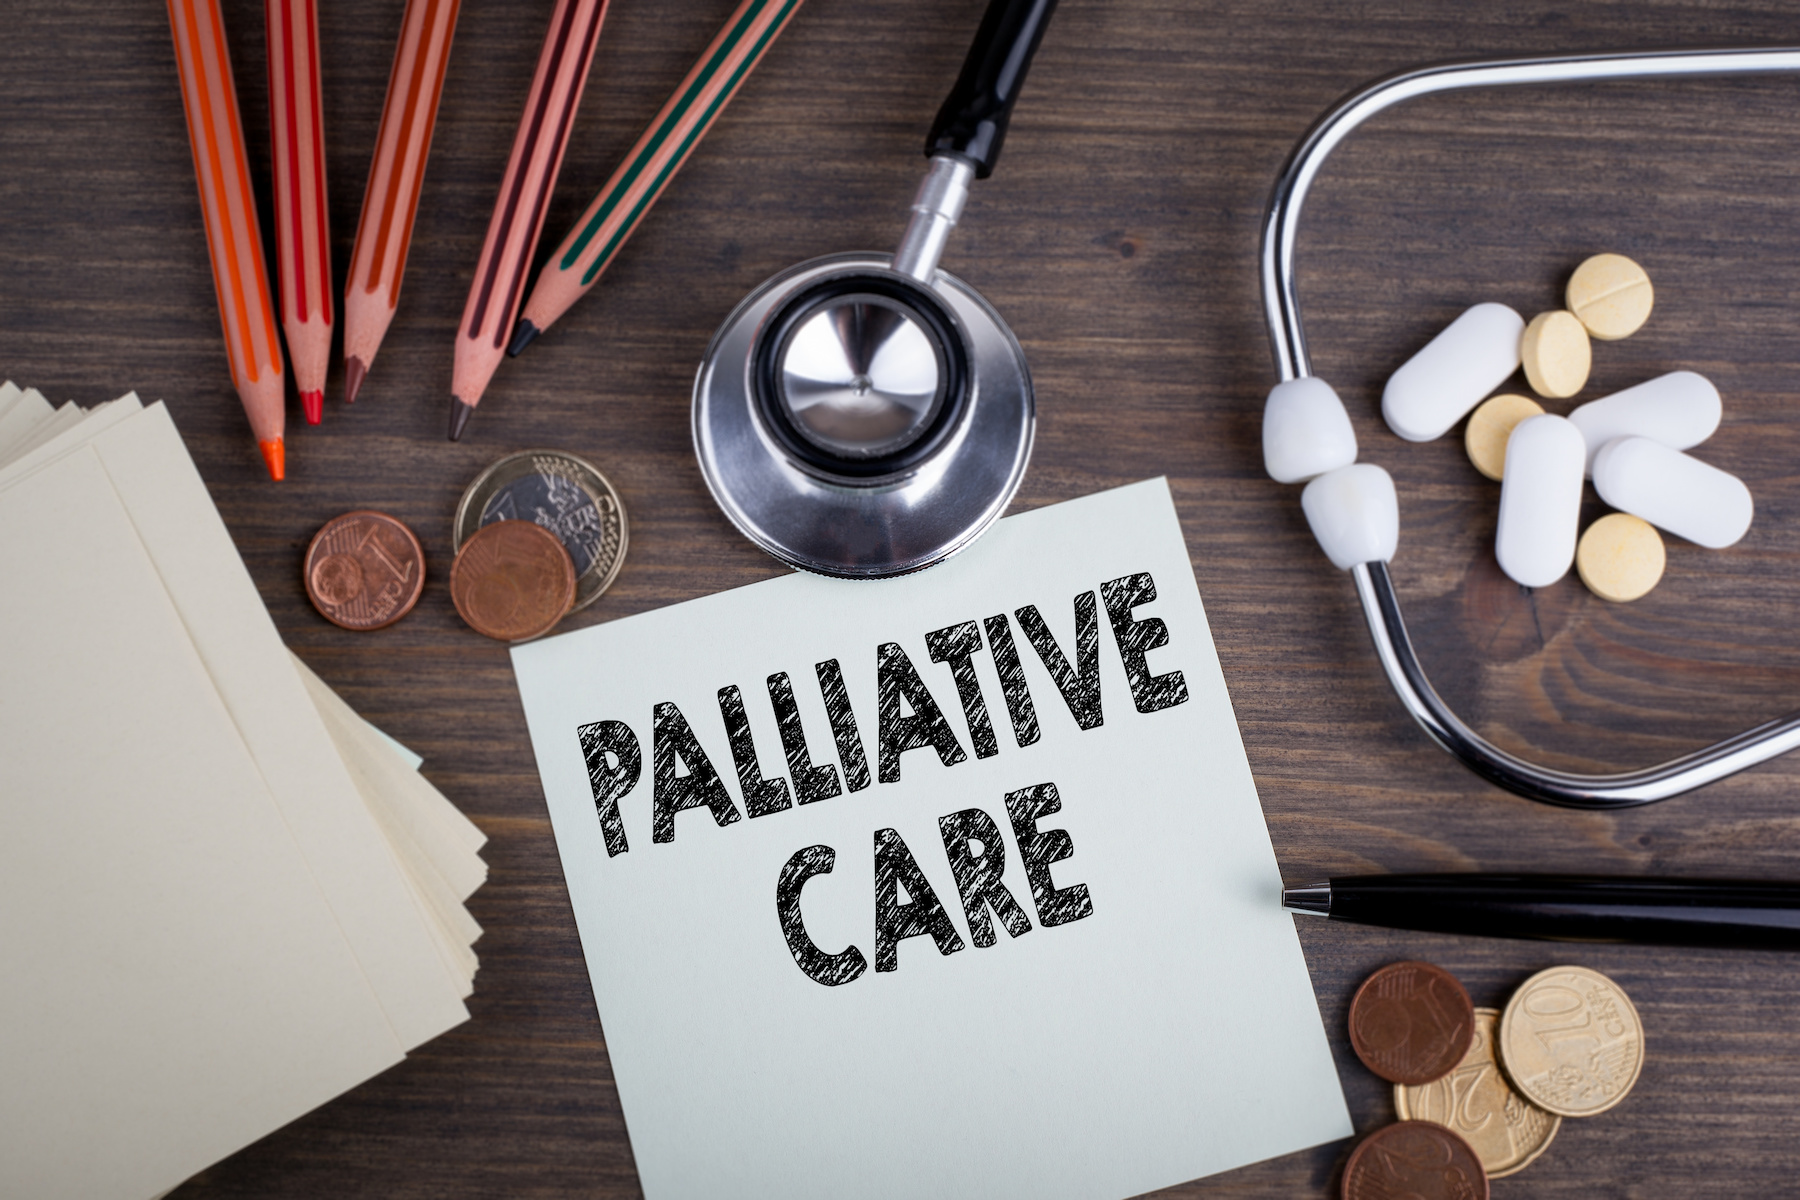 Learn Medical Spanish – Talking About Palliative Care in Spanish